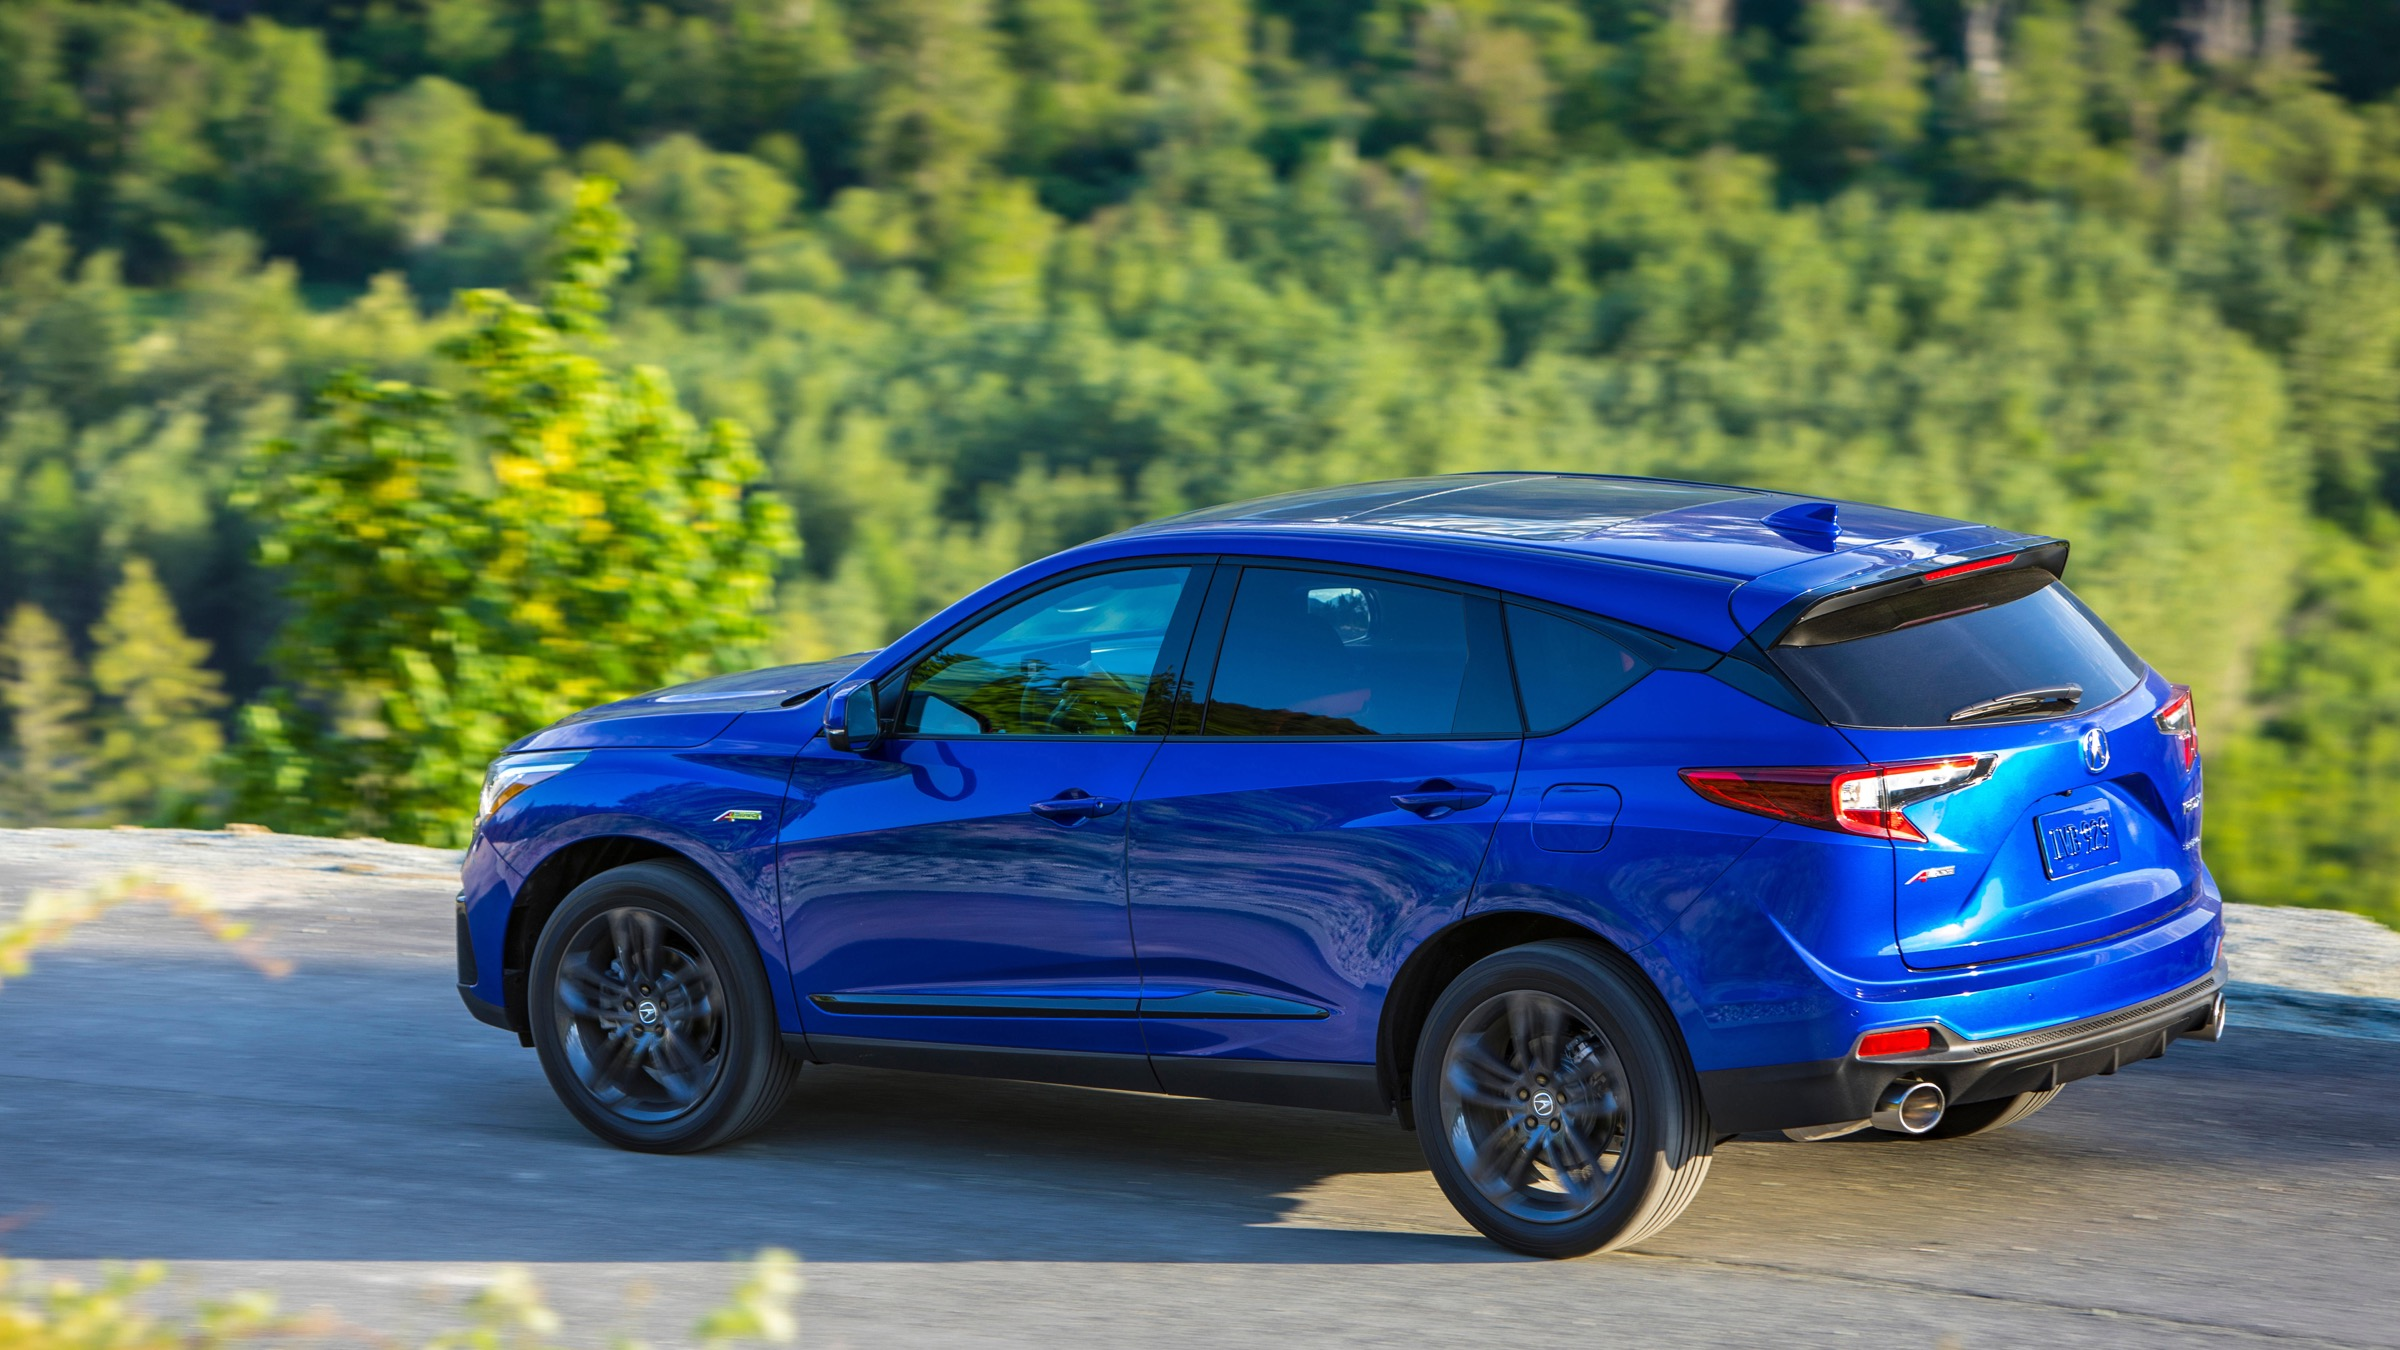 Me Touch Unlimited Avis 2020 acura rdx review and buying guide | specs, features